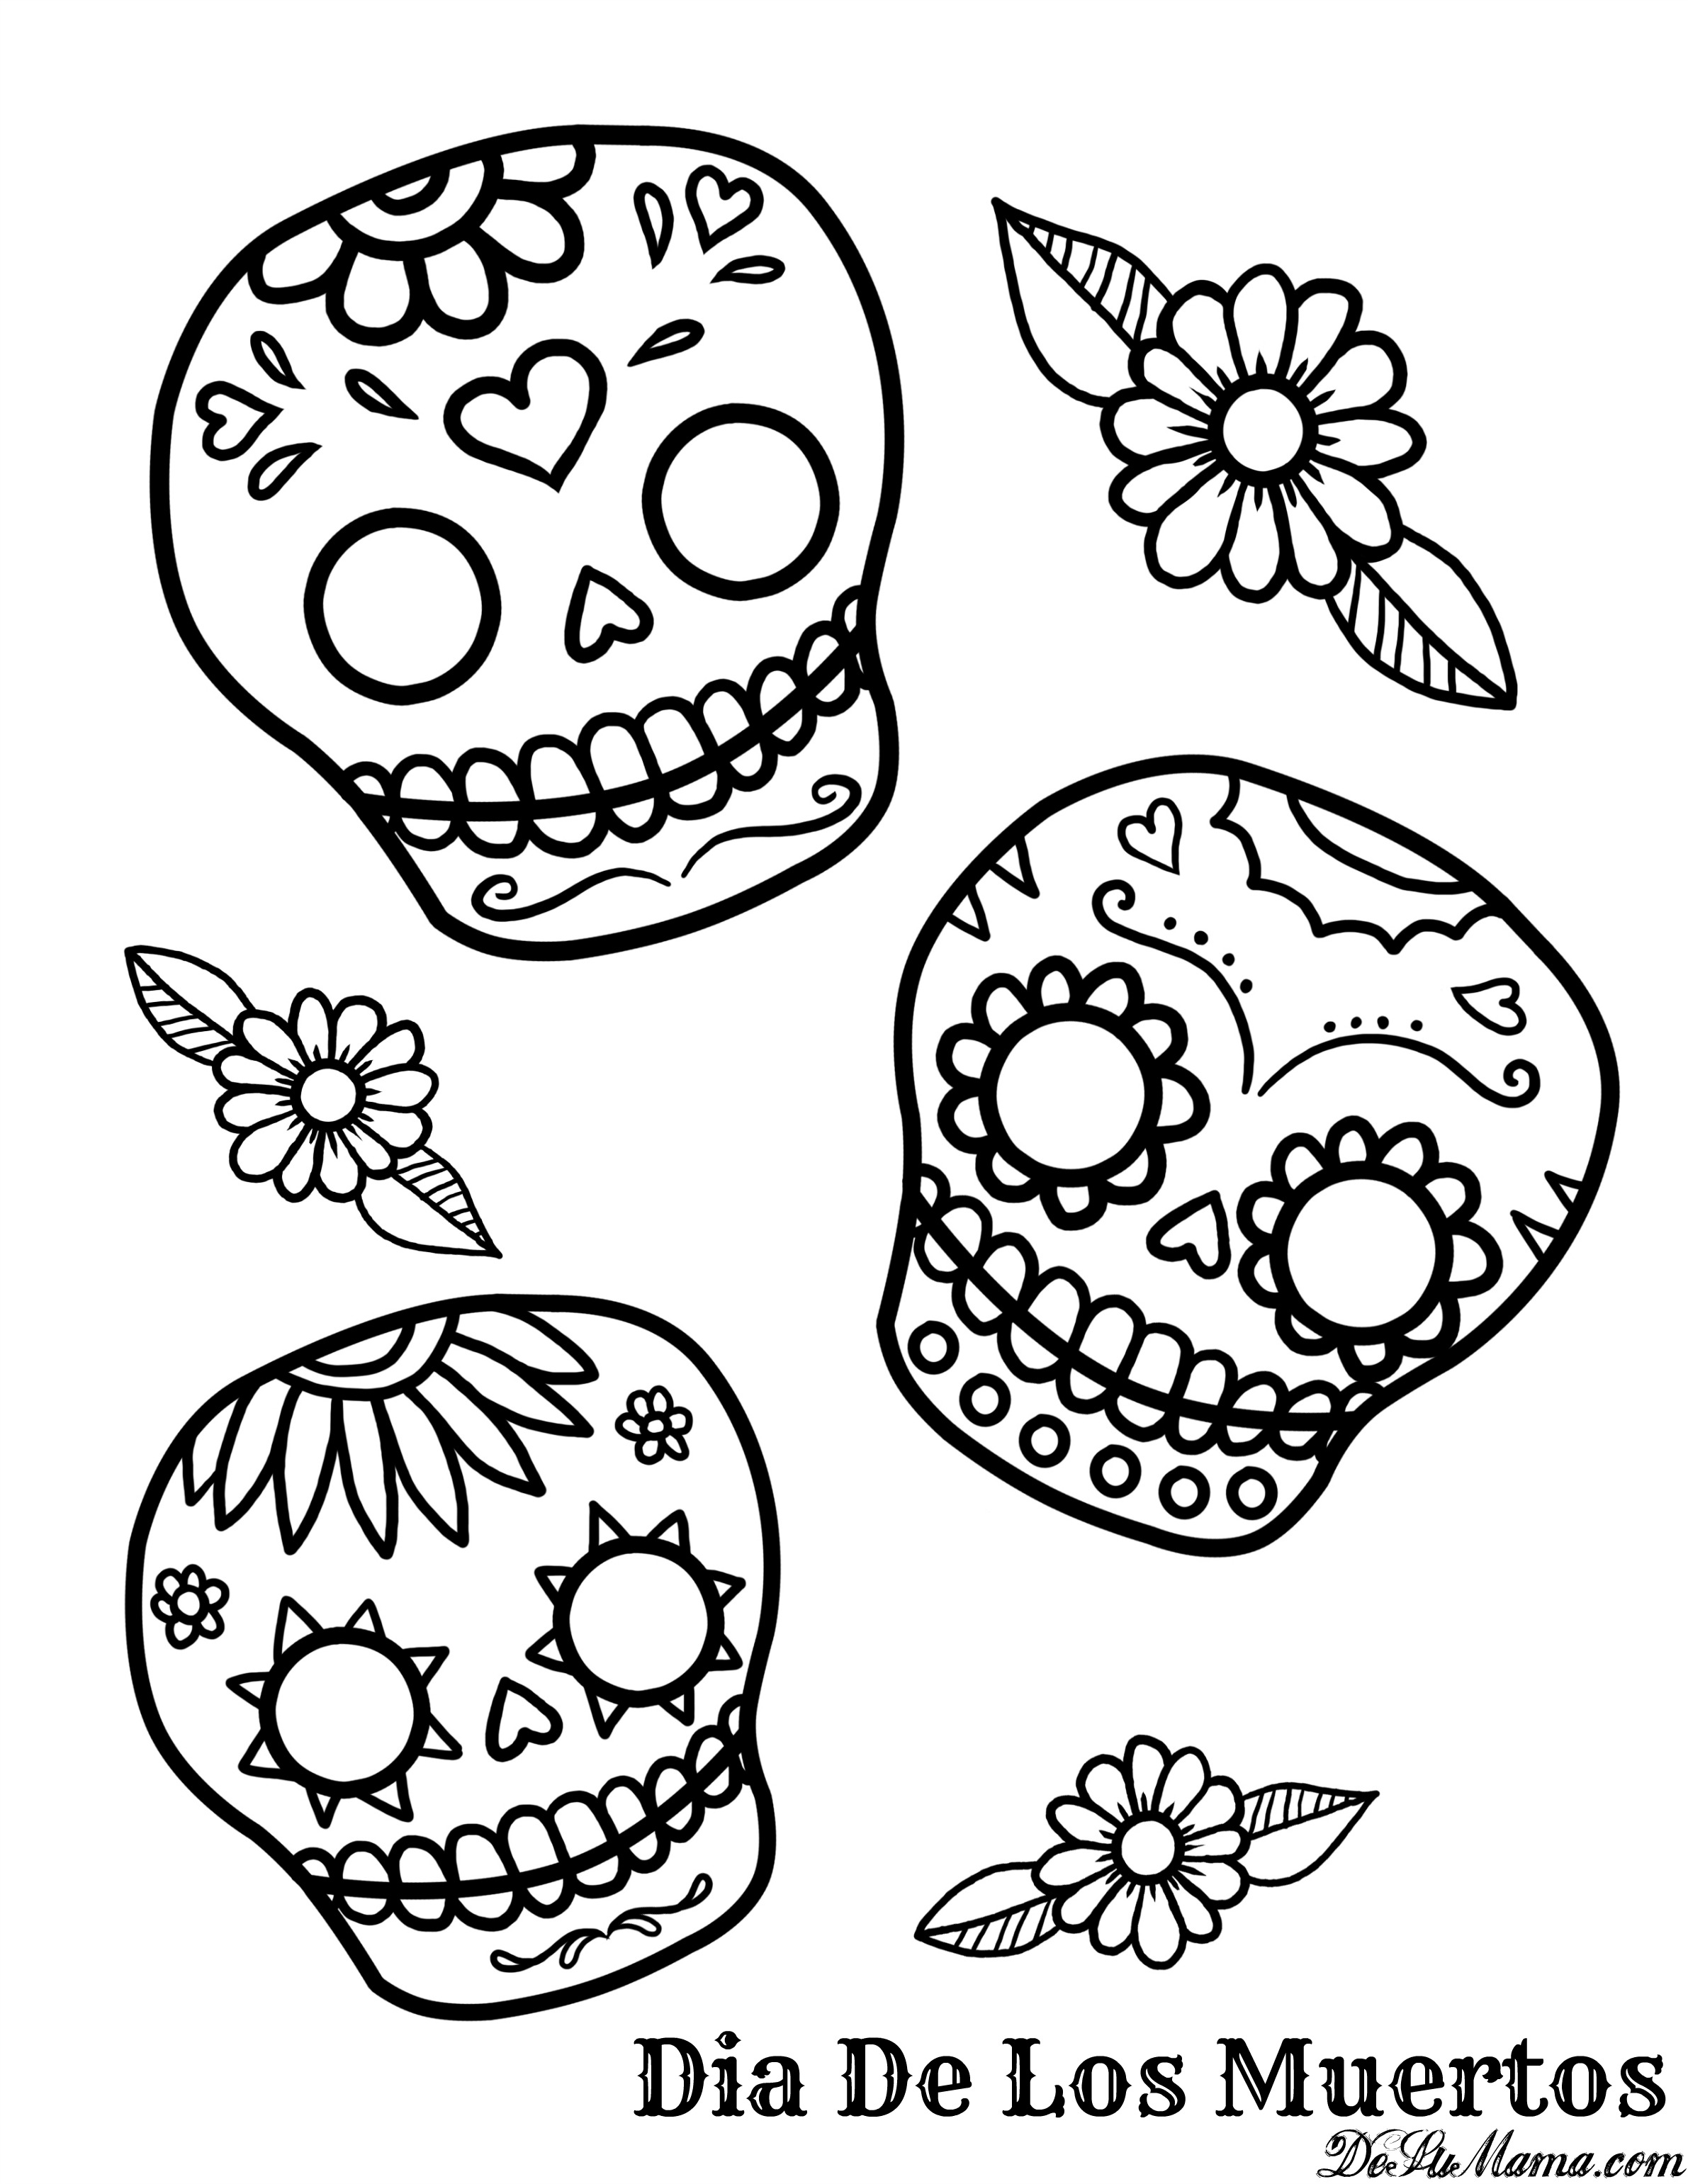 Free Worksheet Day Of The Dead Worksheets mexican day of the dead art and free printables sugar skull printable